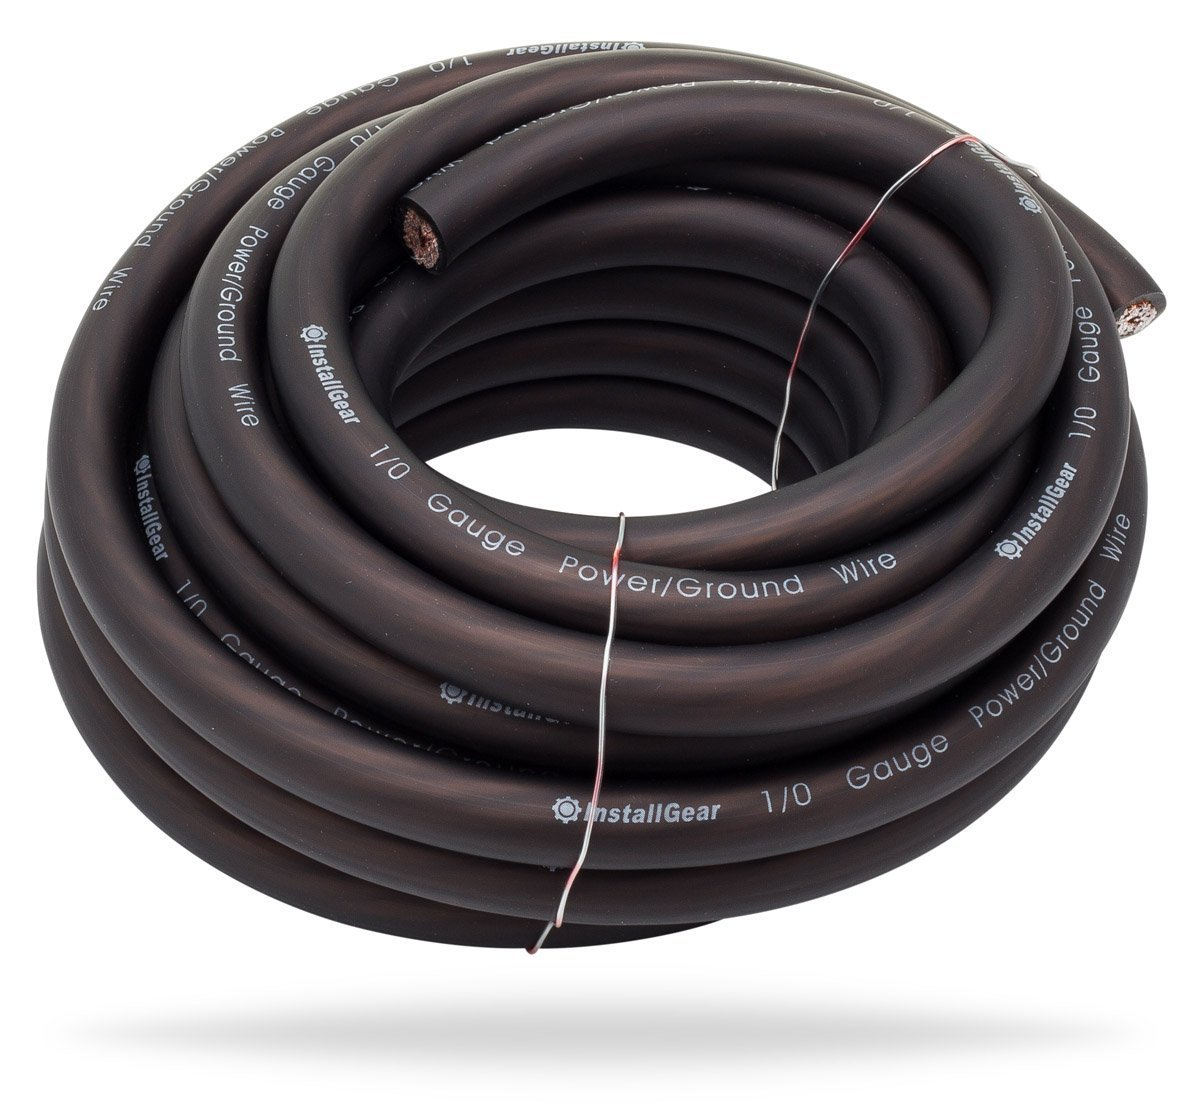 InstallGear 1/0 Gauge Black 25ft Power/Ground Wire - OFC (99.9% Oxygen-free Copper)